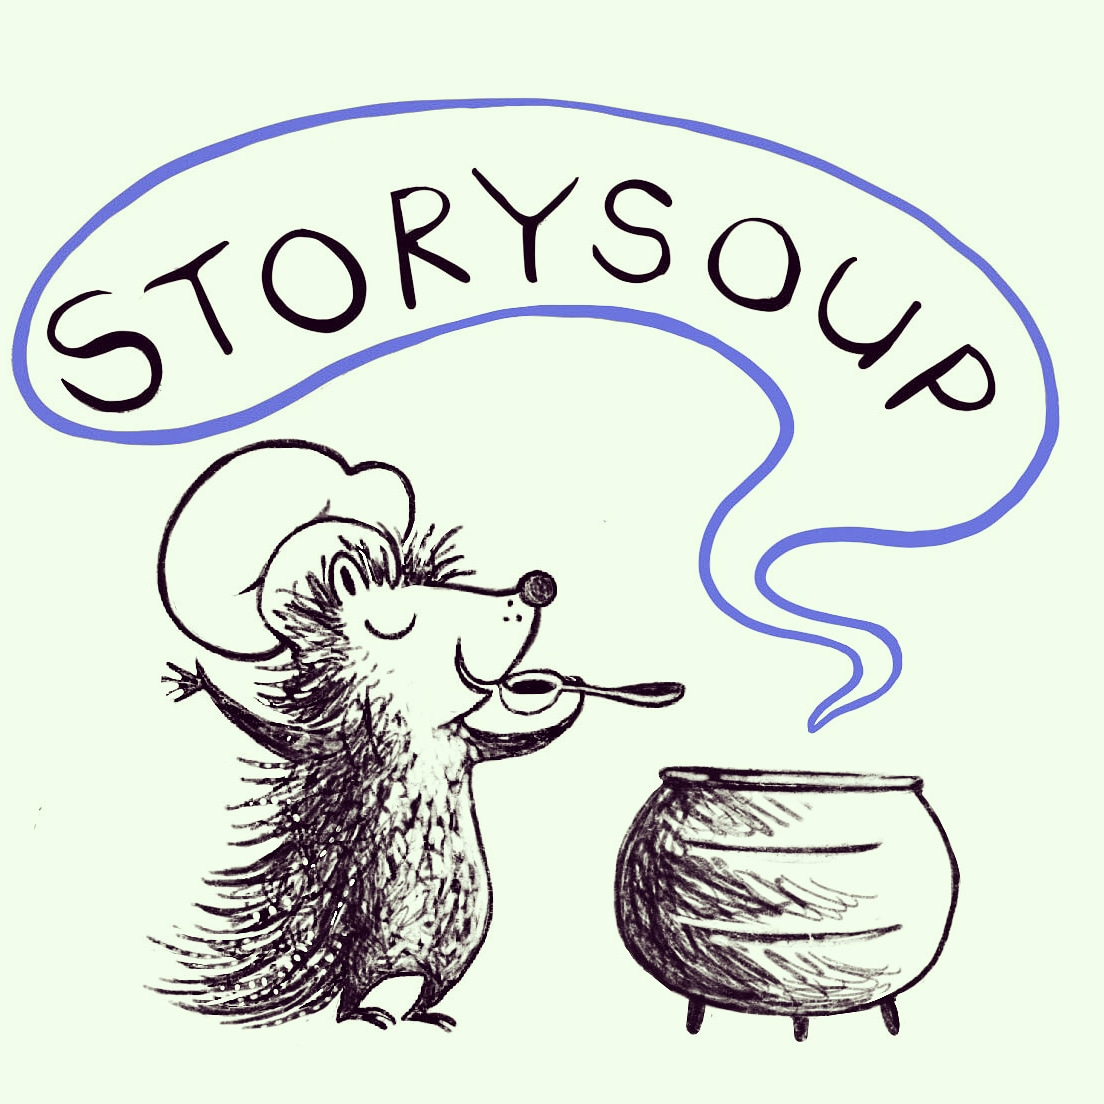 My next #onlinecourses on #writingforchildren begin on 27 July (5- module #introductorywritingcourse) and 10 August (#writingworkshop and tutorials for #WorkinProgress).  https://storysoupstore.com/collections/writing…pic.twitter.com/1lR53VhjrV